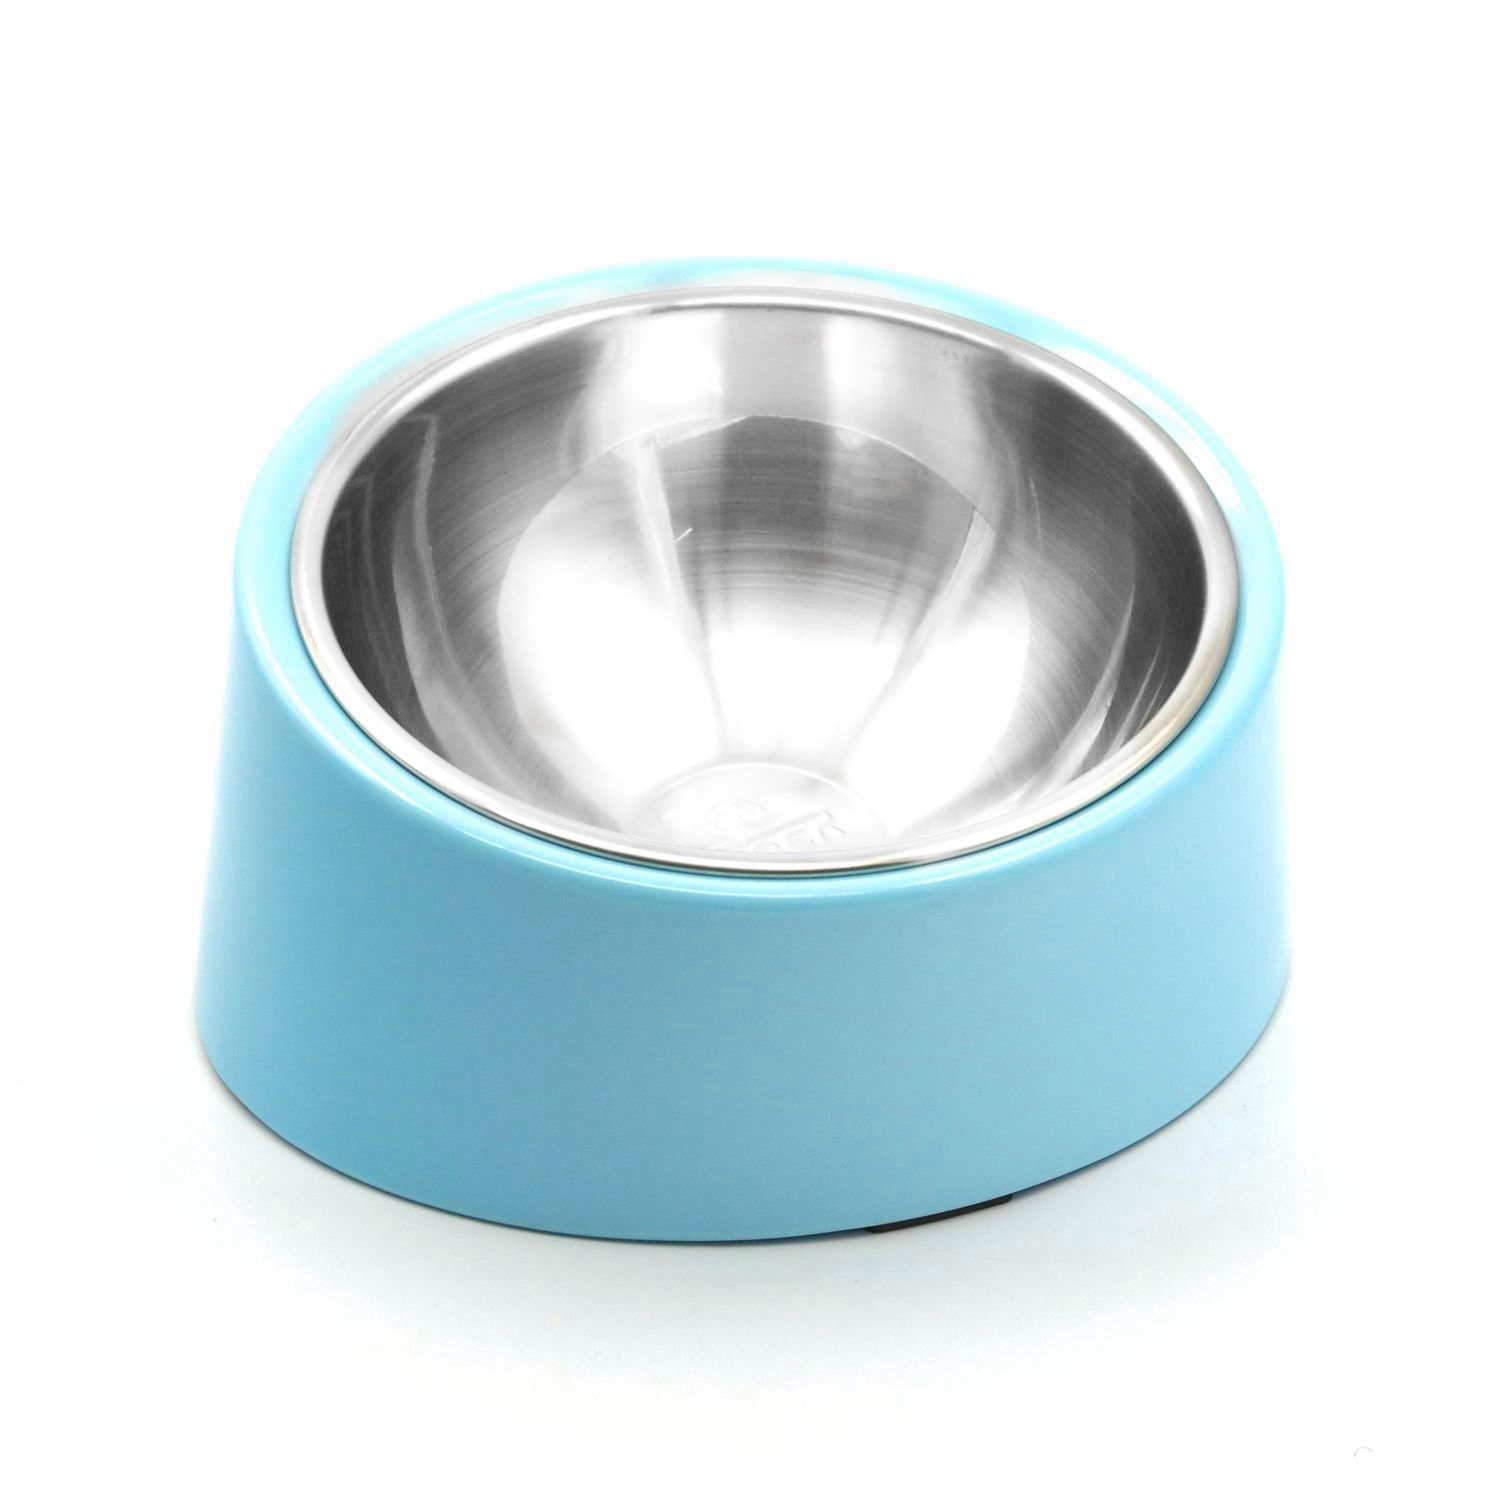 Stainless Steel Dog Cat Bowl Removable Raised Bowl Food Feeder 15 Degree Slanted Pet Supplies